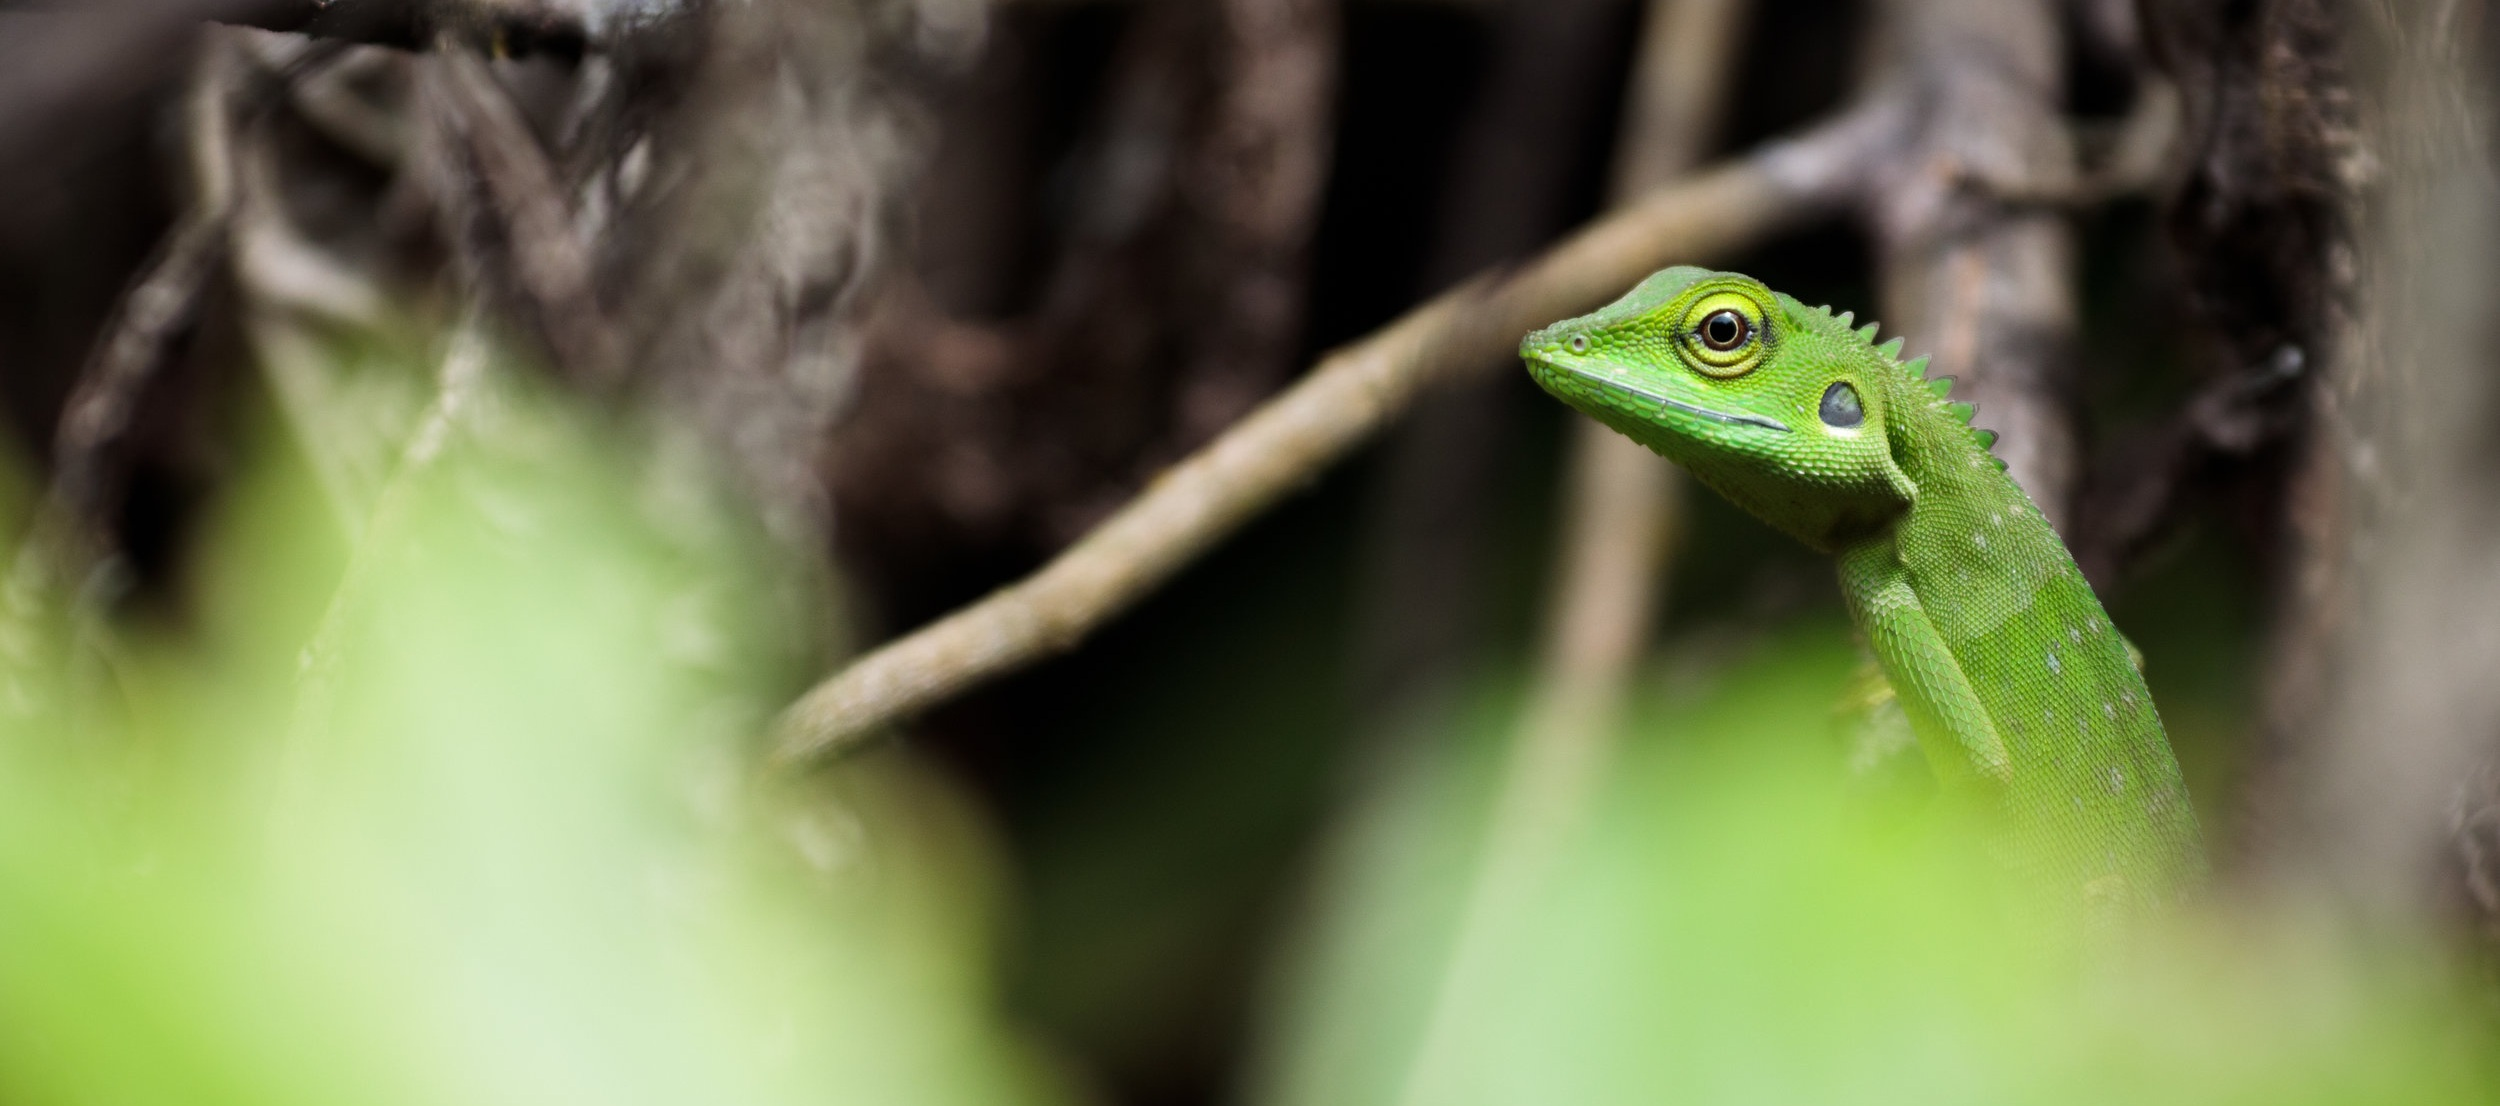 Green crested lizard (Bronchocela cristatella) portrait in the jungle of Bukit Lawang, Indonesia.